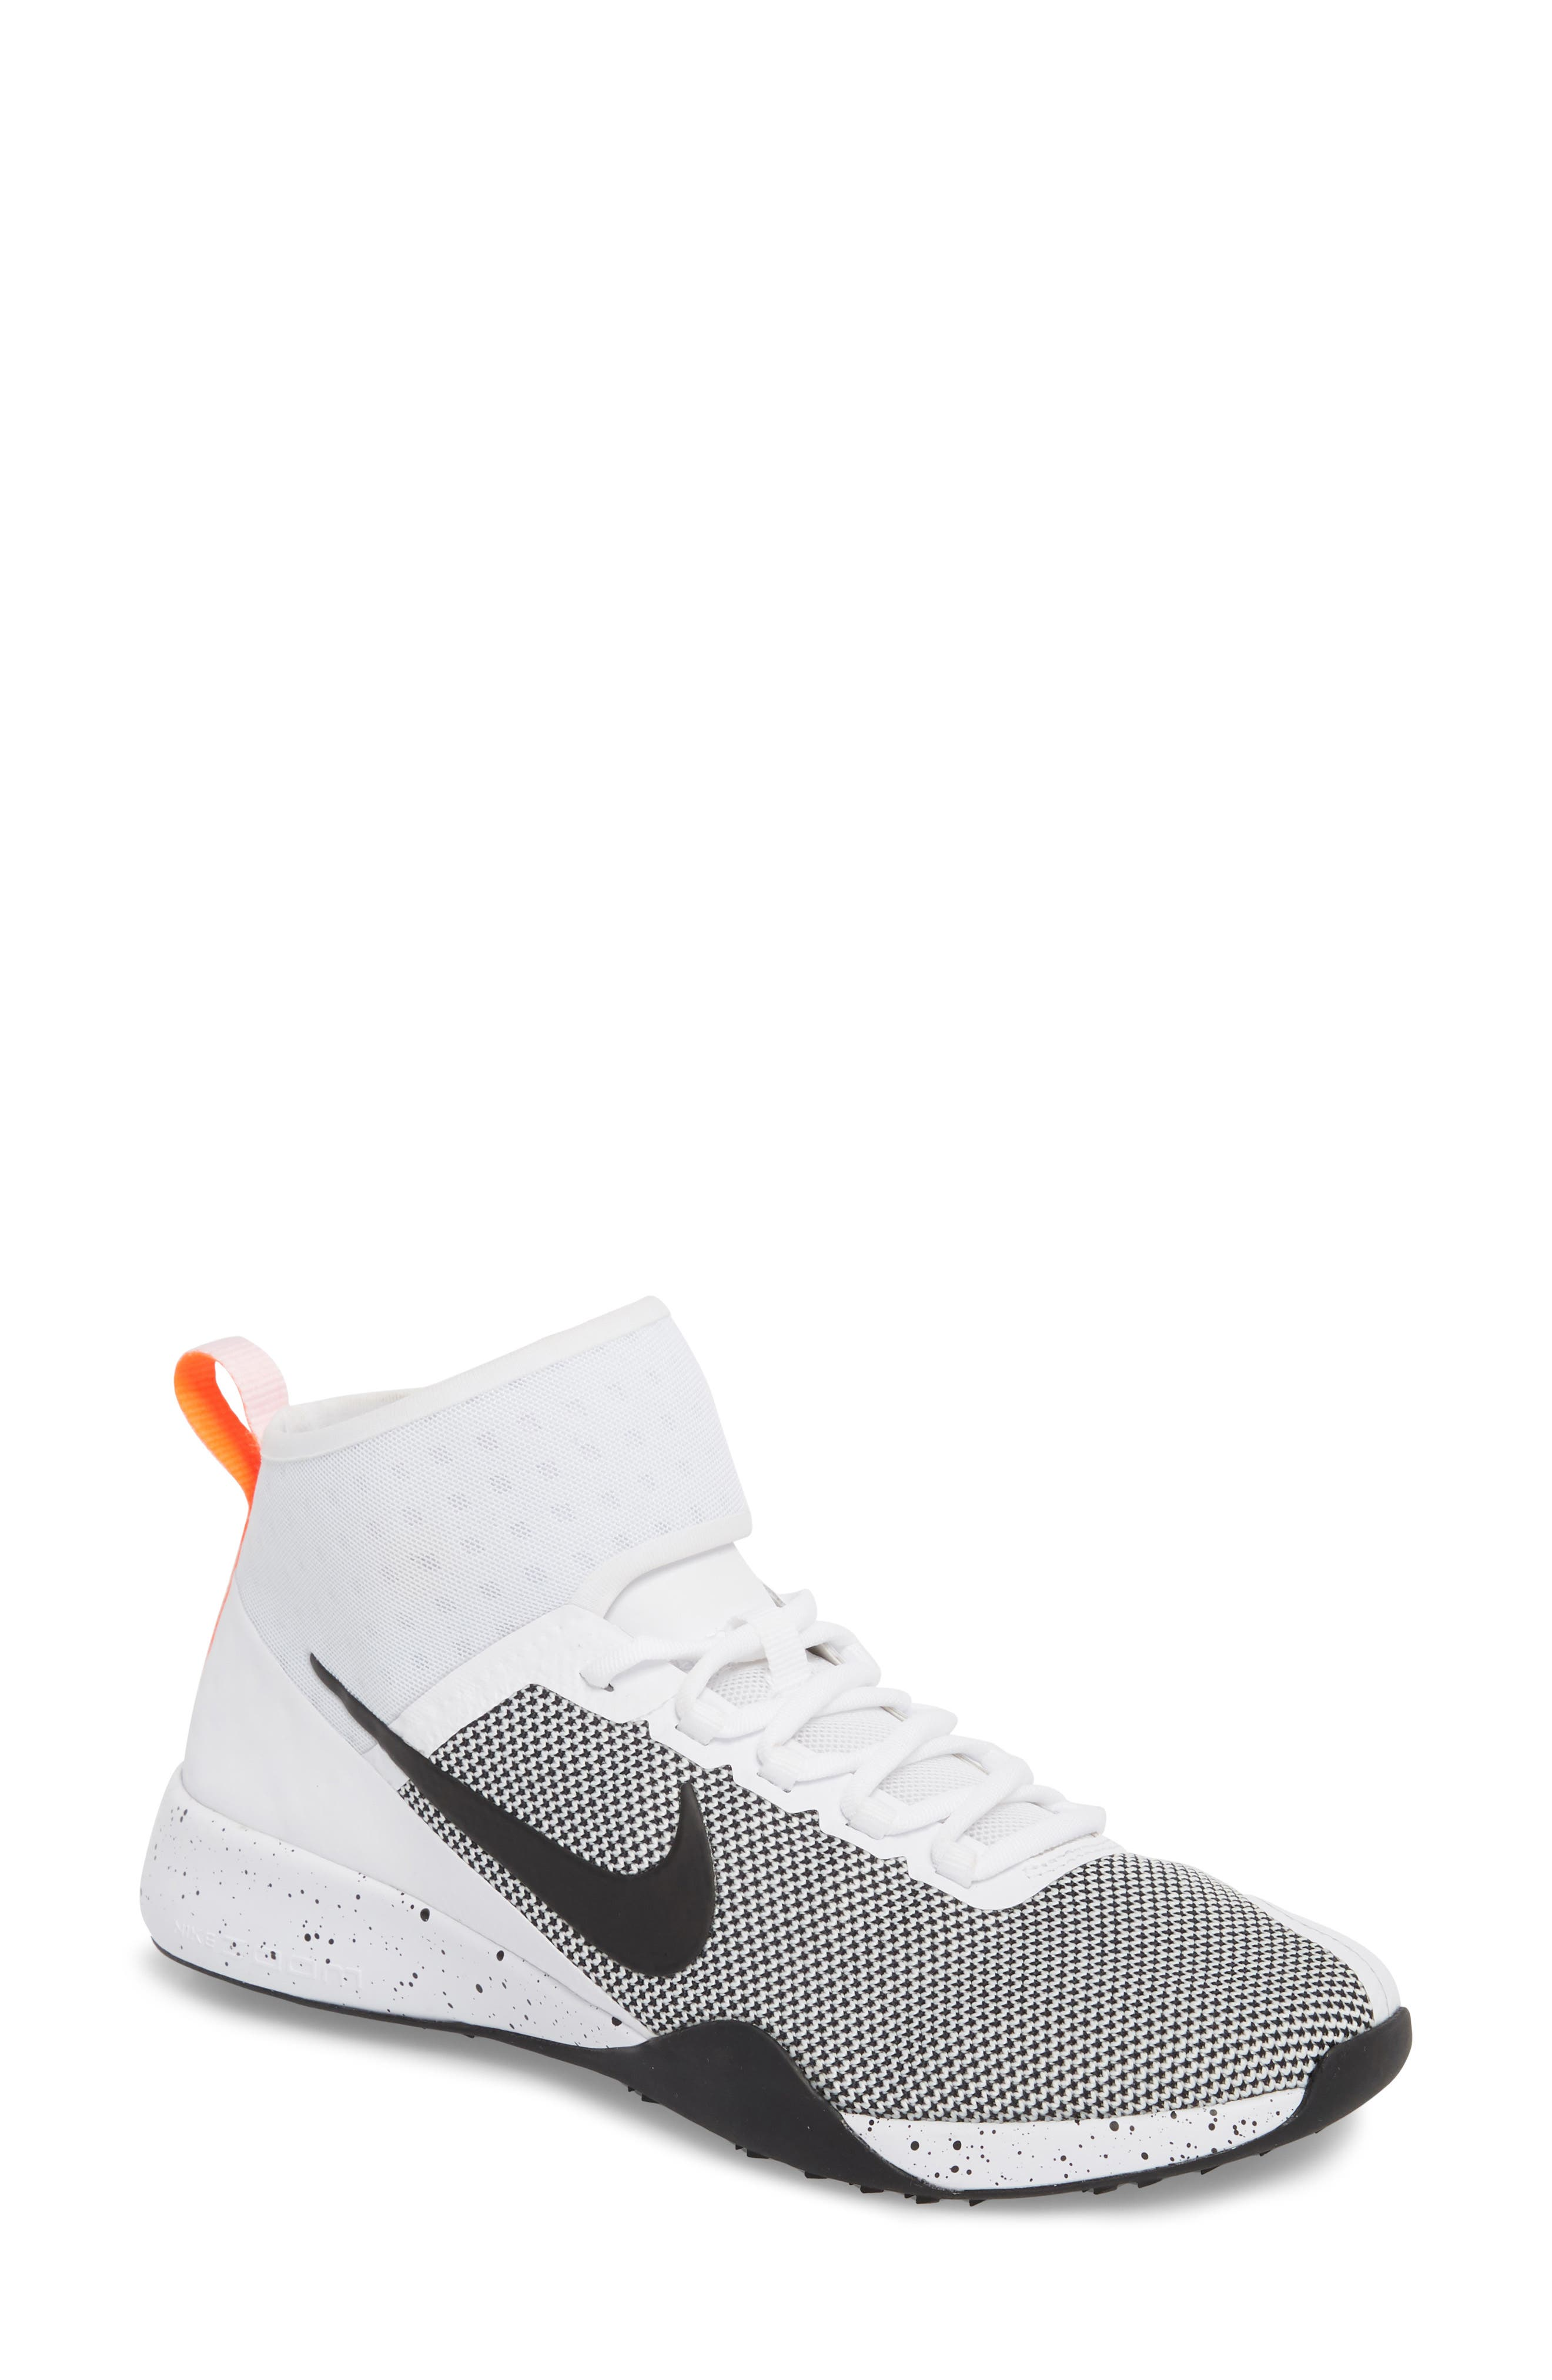 NikeLab Air Zoom Strong 2 Training Shoe,                             Main thumbnail 1, color,                             White/ Black/ Total Crimson